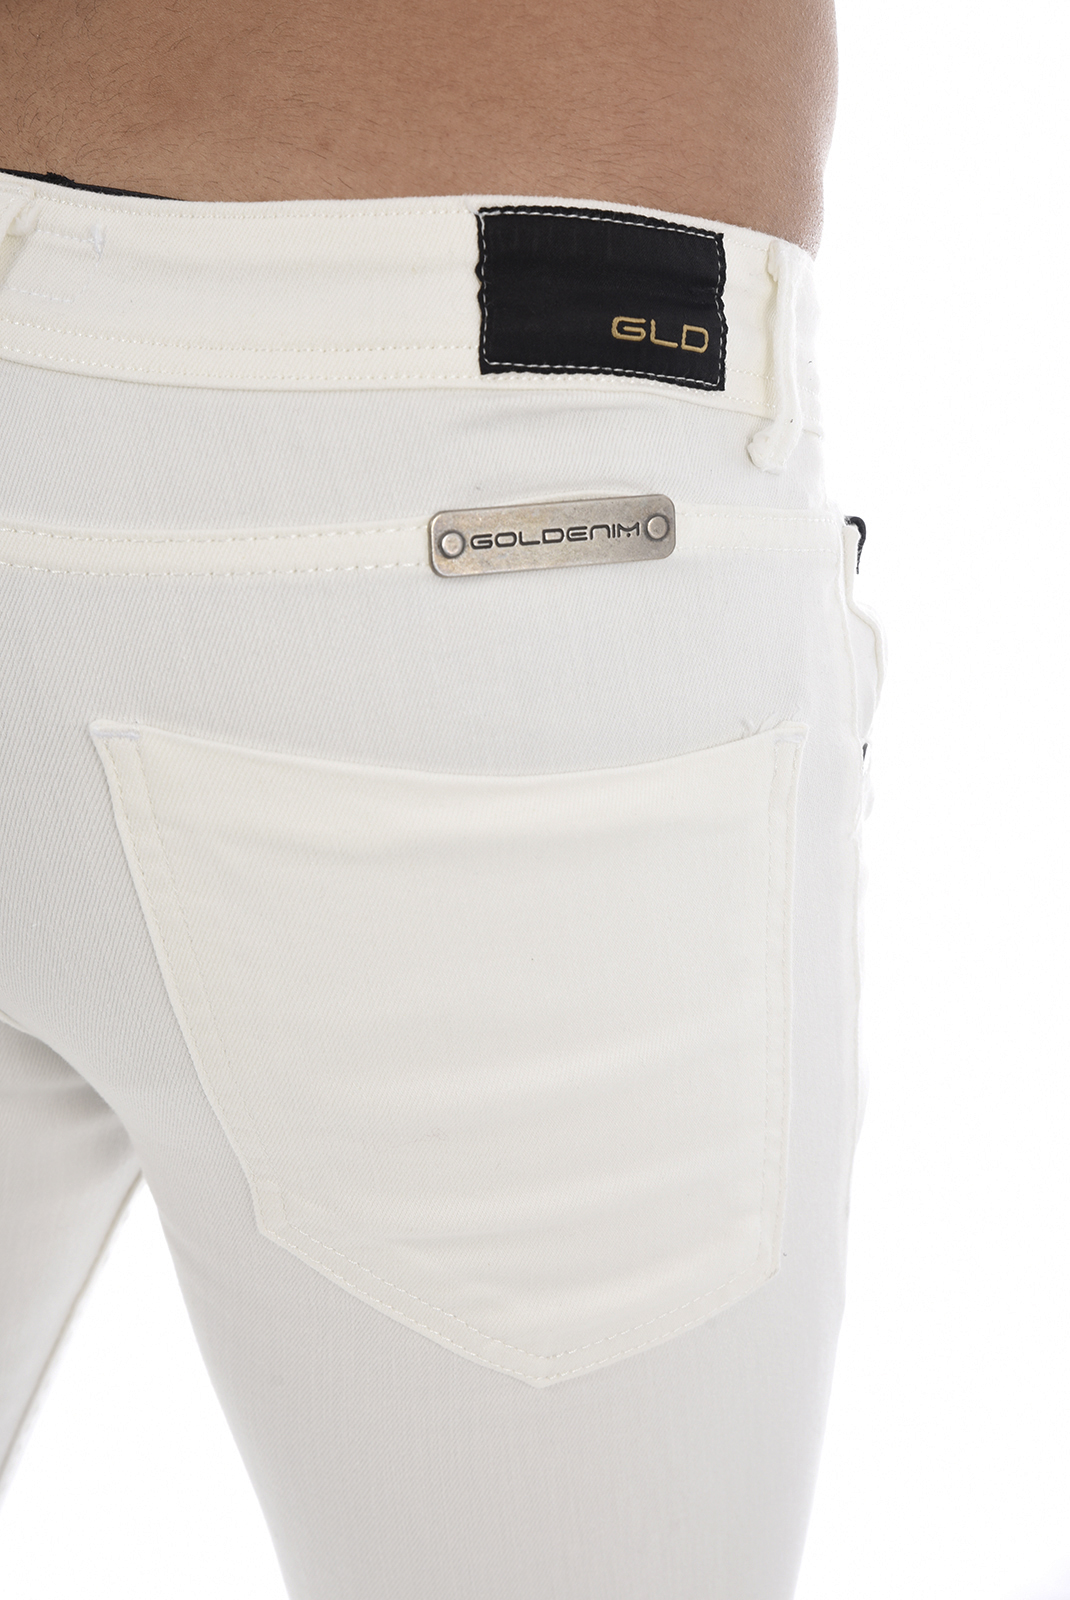 Jeans  Goldenim paris 1010 BLANC